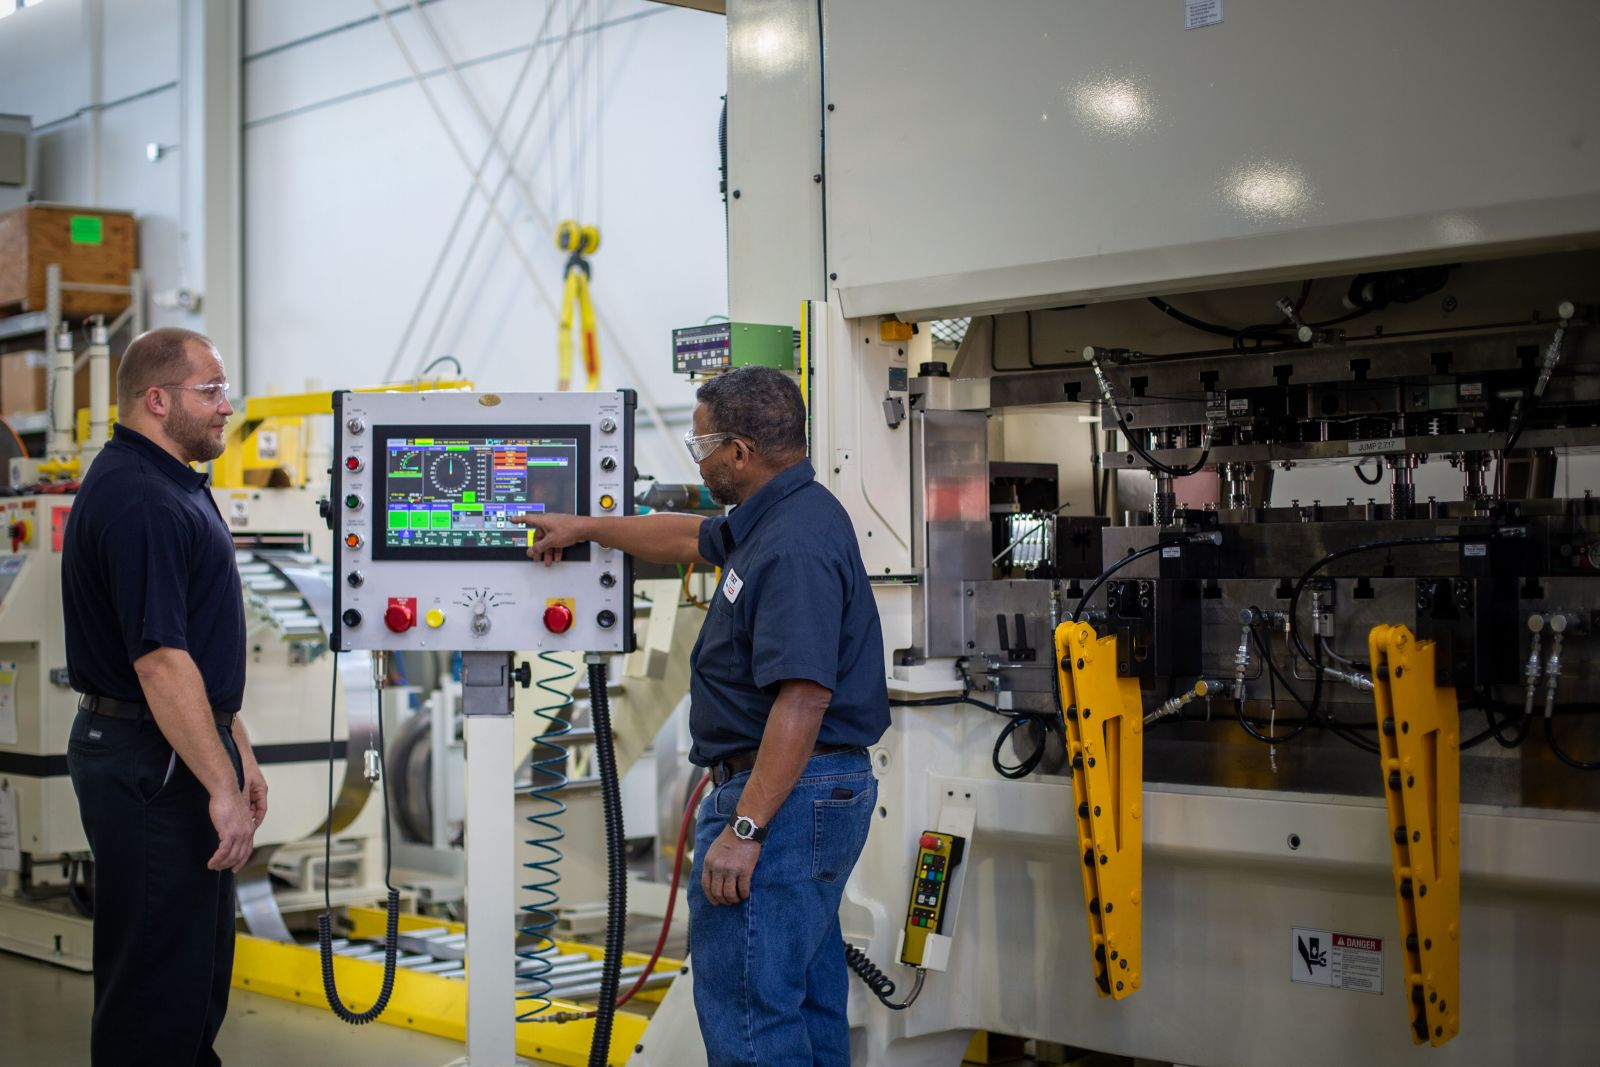 Upstate SC Alliance CEO John Lummus said during the meeting that the Upstate SC Alliance was eyeing industrial automation as the Upstate's vehicle to future growth alongside workforce development initatives like Skill-Up, announced last year. (Photo/Provided)